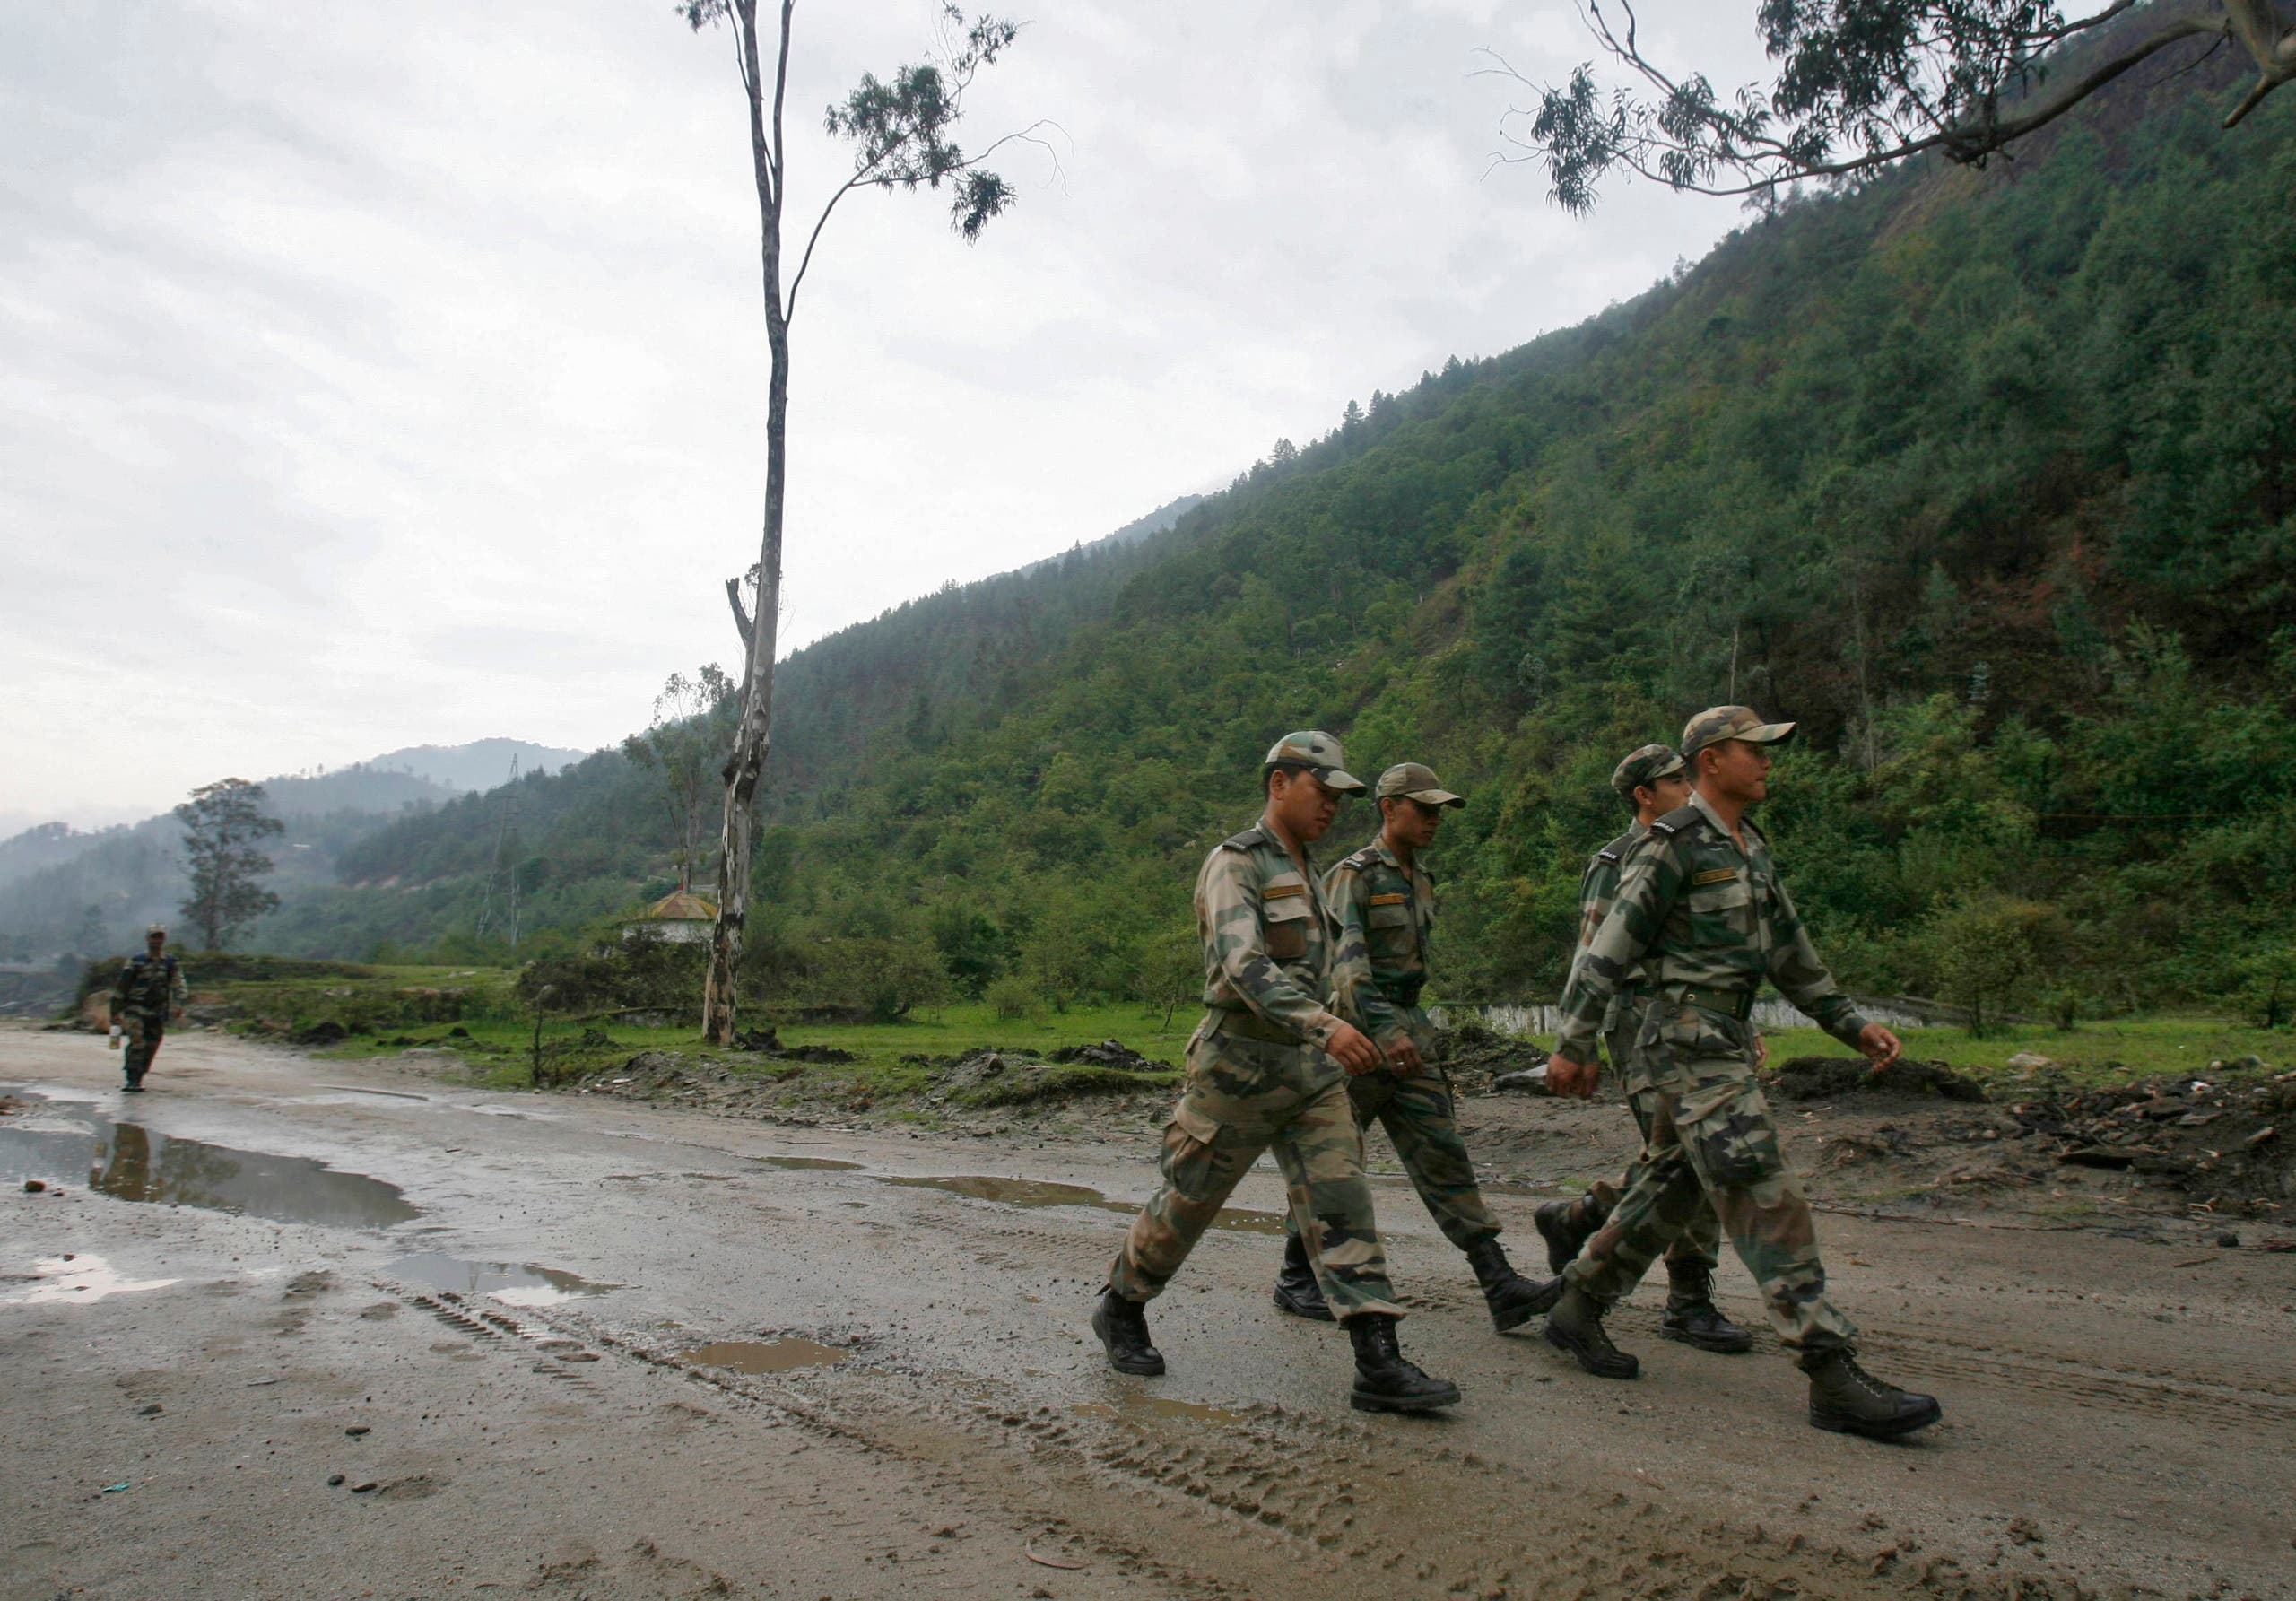 Indian army soldiers march near an army base on India's Tezpur-Tawang highway, which runs to the Chinese border, in the northeastern Indian state of Arunachal Pradesh on May 29, 2012. (Reuters)